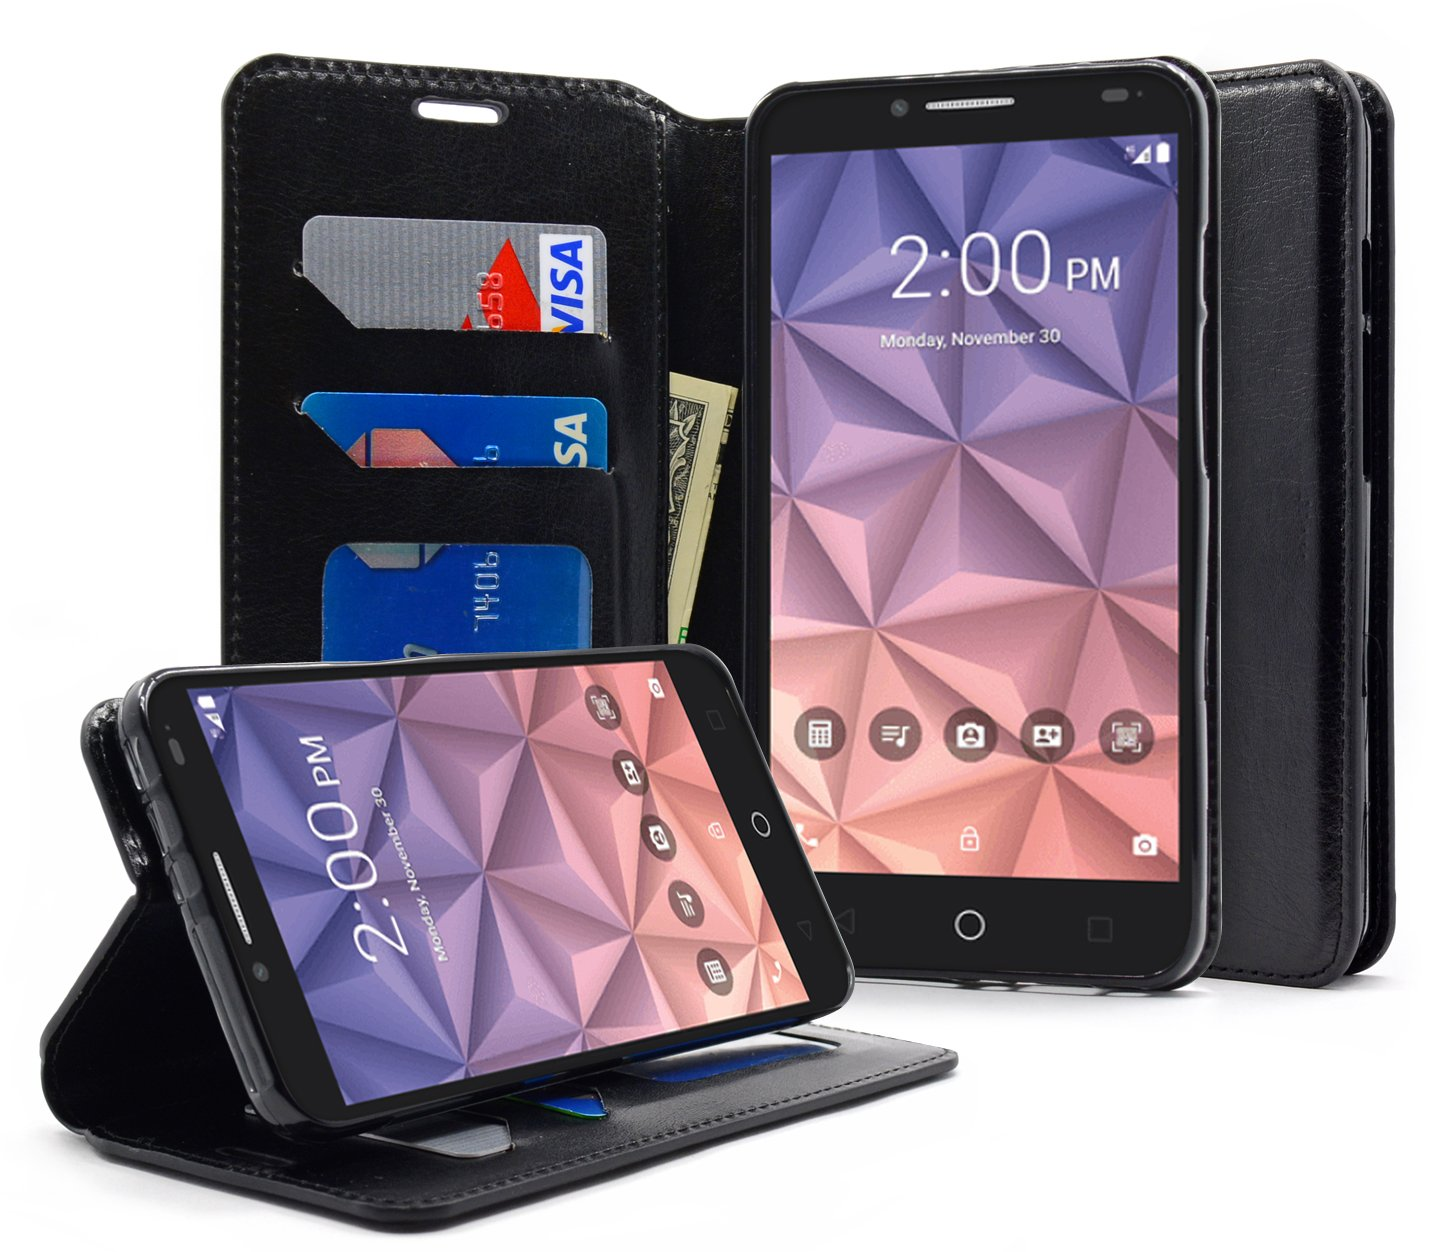 online retailer dcbf9 06c78 Alcatel OneTouch Flint Case, Alcatel Pixi Glory 4G LTE Case, Alcatel Fierce  XL Case,NageBee [Kickstand Feature] Premium PU Leather Flip Fold Wallet ...